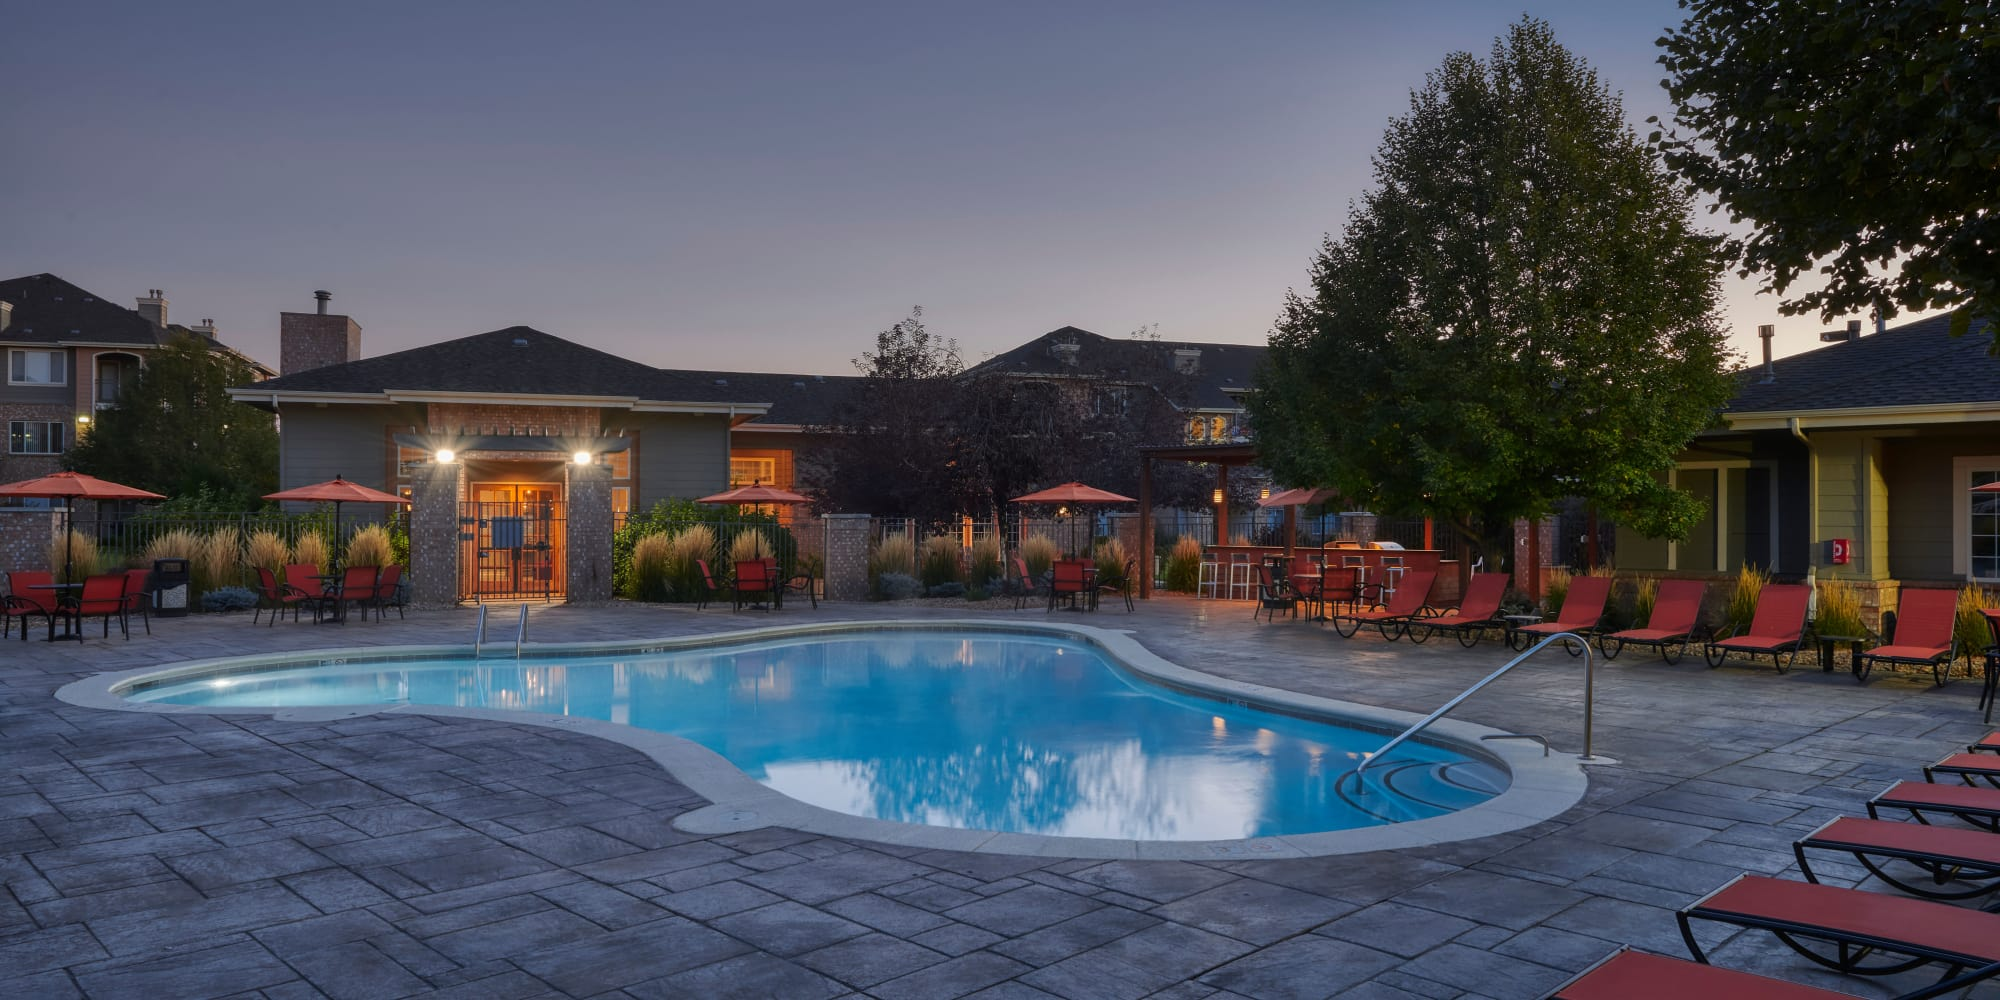 Sunrise pool view with lounge chairs and clubhouse in Thornton, CO